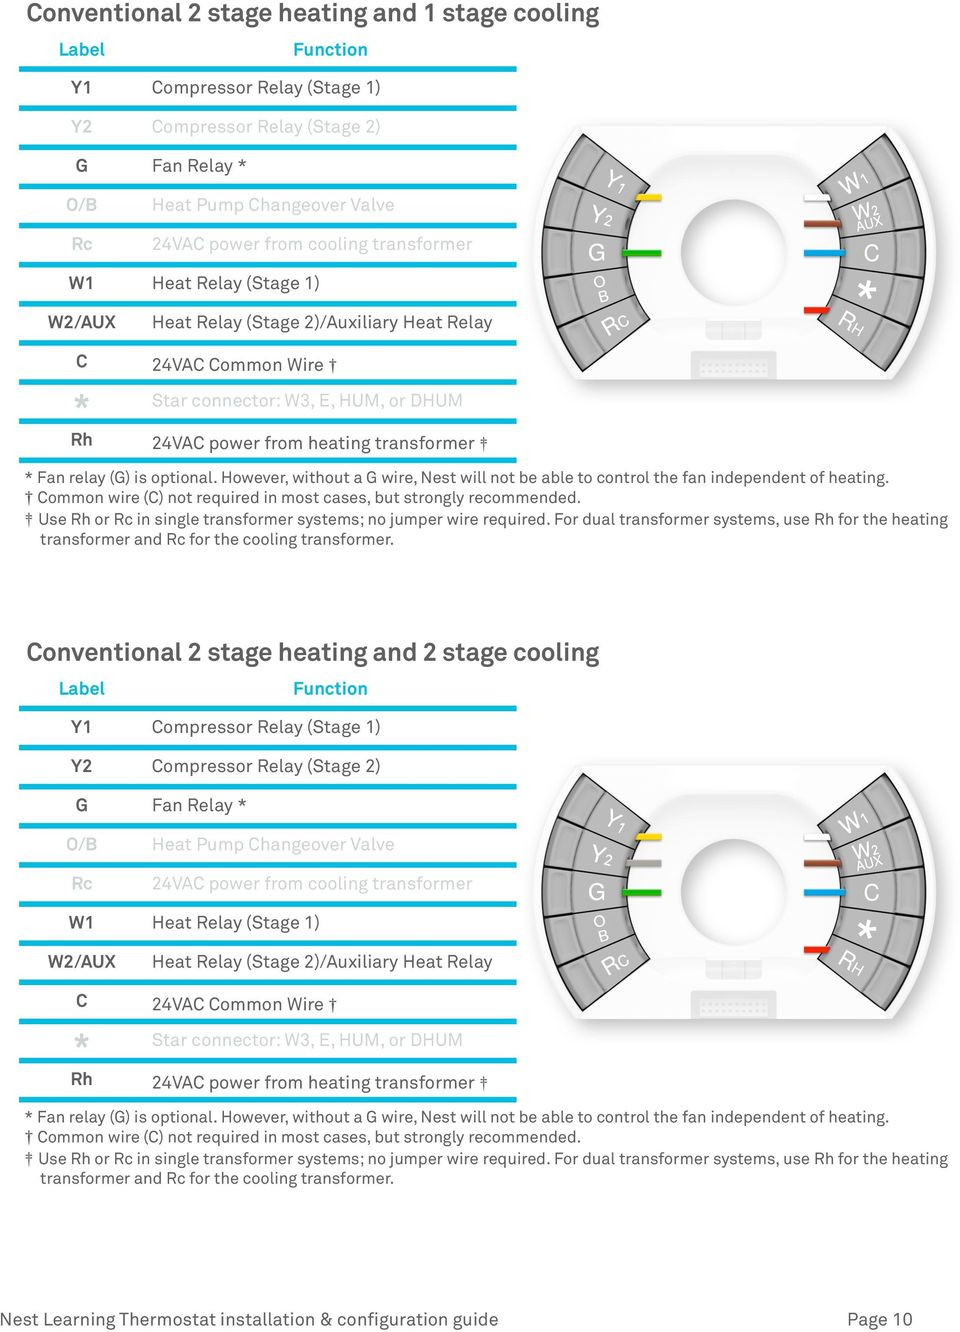 Nest Learning Thermostat Pro Installation & Configuration Guide - Pdf - Nest Humidifier Wiring Diagram With No C Terminal